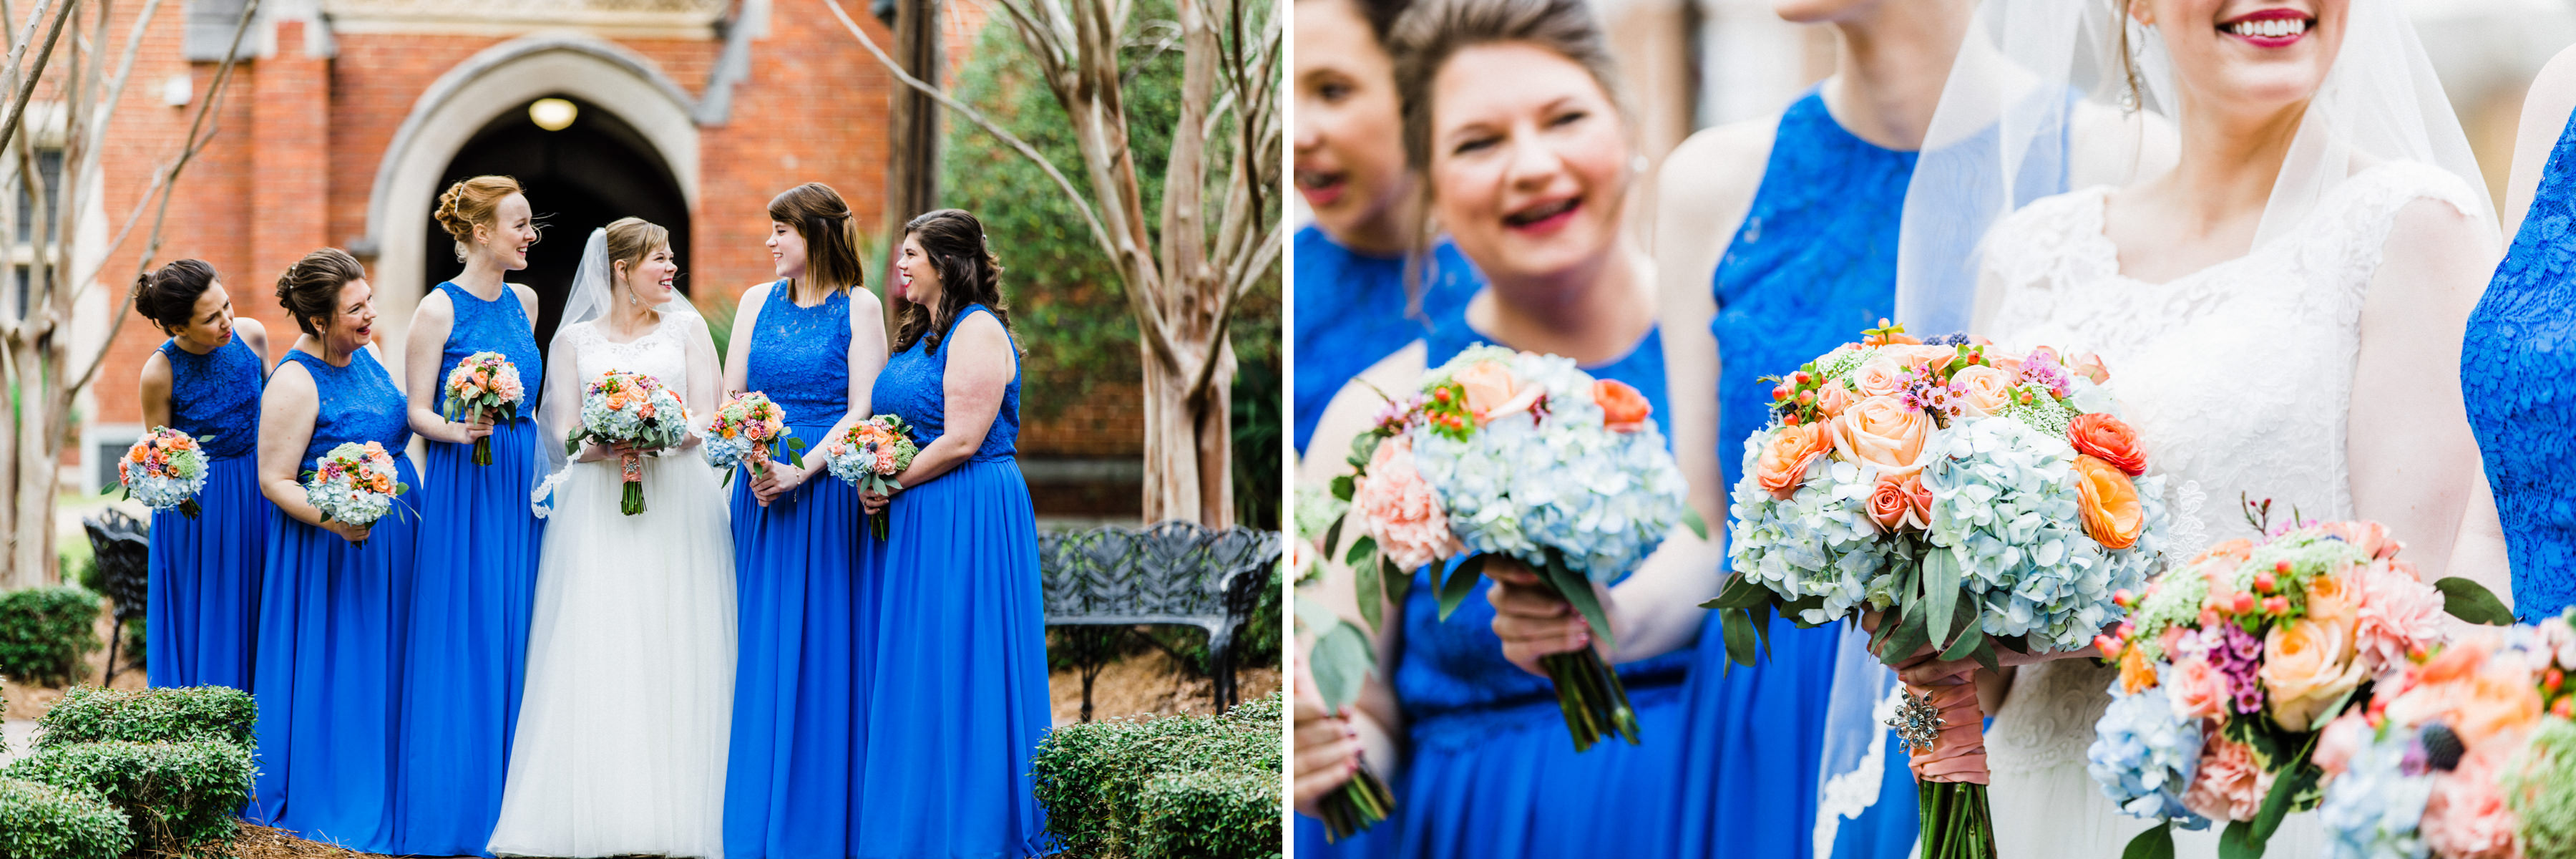 MAULDIN_WEDDING_MONTGOMERY_ALABAMA_WEDDING_PHOTOGRAPHY_35